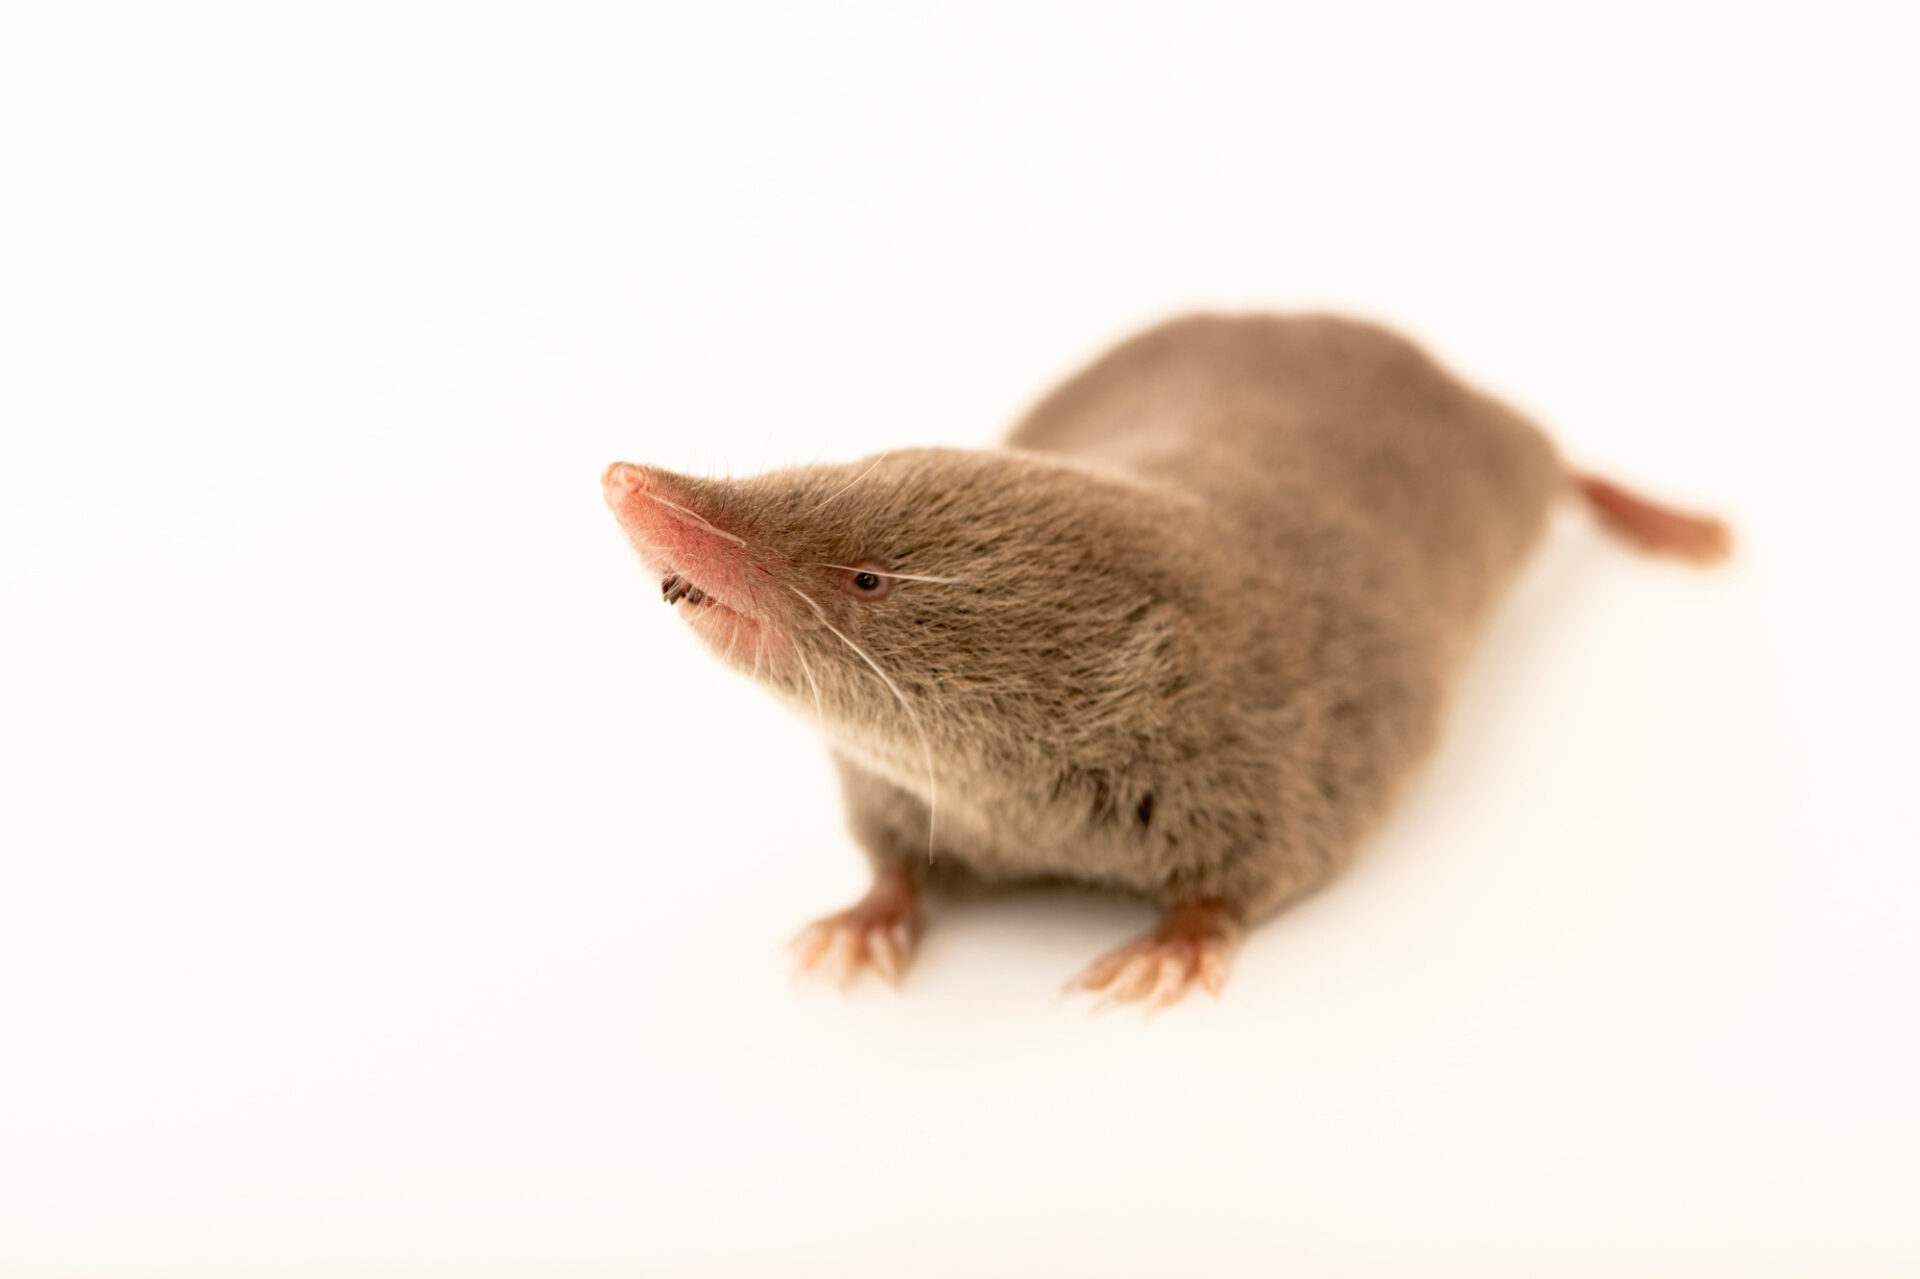 Photo: An Elliot's short-tailed shrew (Blarina hylophaga hylophaga) at the WildCare Foundation, a wildlife rehabber in Noble, Oklahoma.